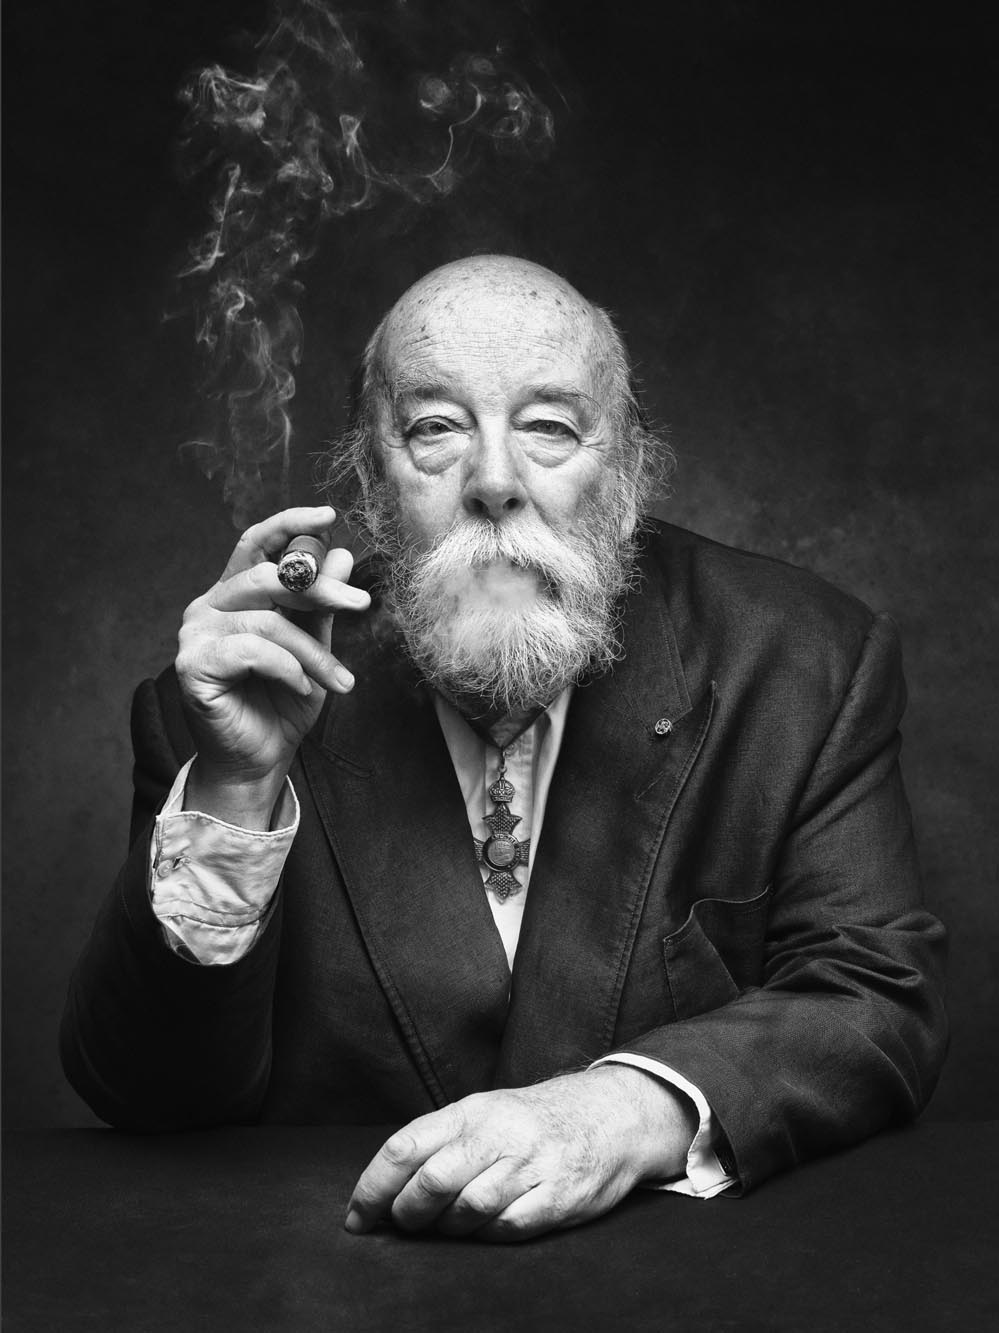 Joe Giacomet Le Bookfolio - bearded man smoking cigar